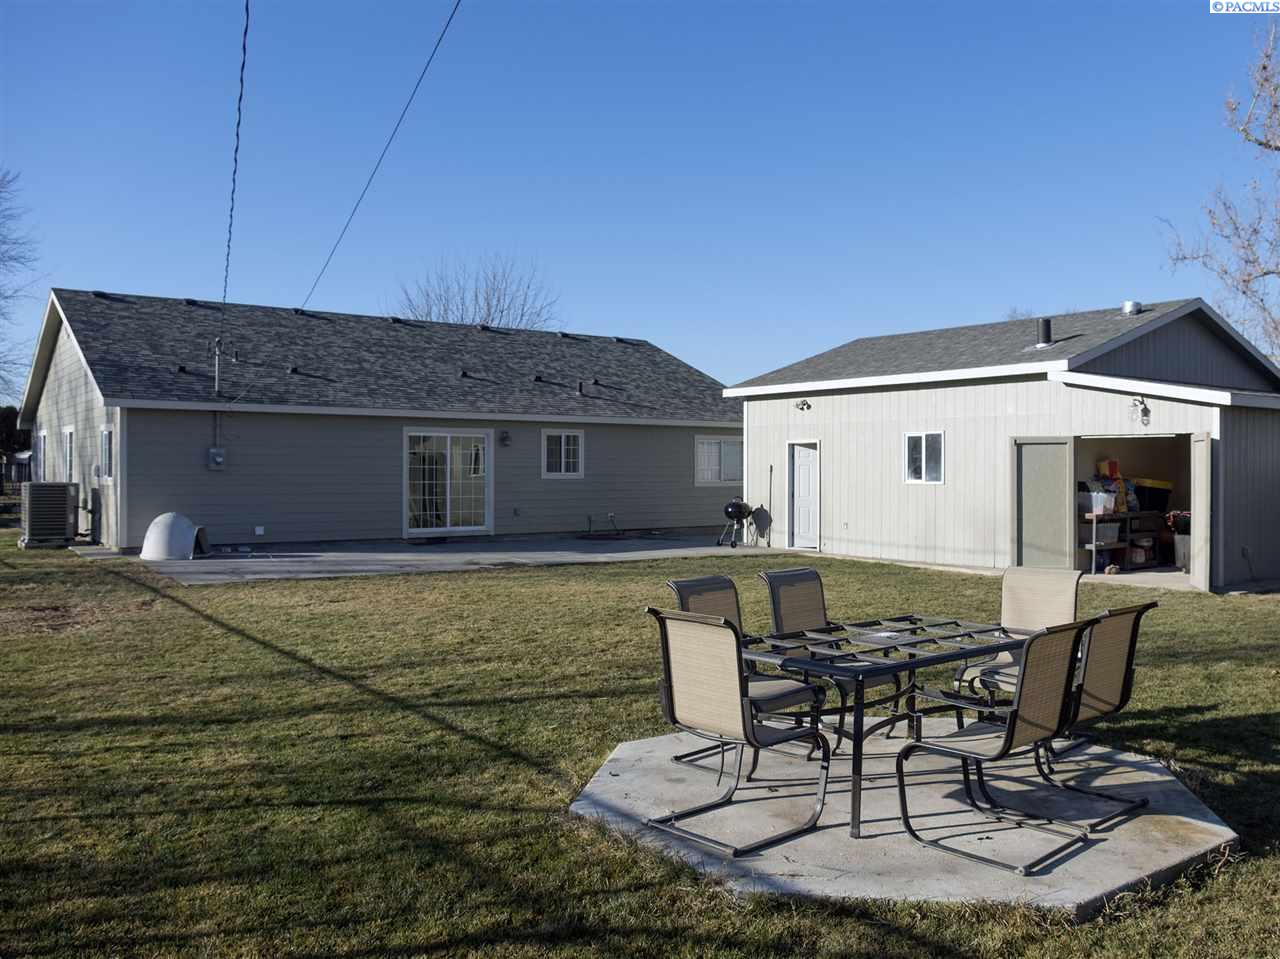 Additional photo for property listing at 105 S Williams Street 105 S Williams Street Kennewick, Washington 99336 United States